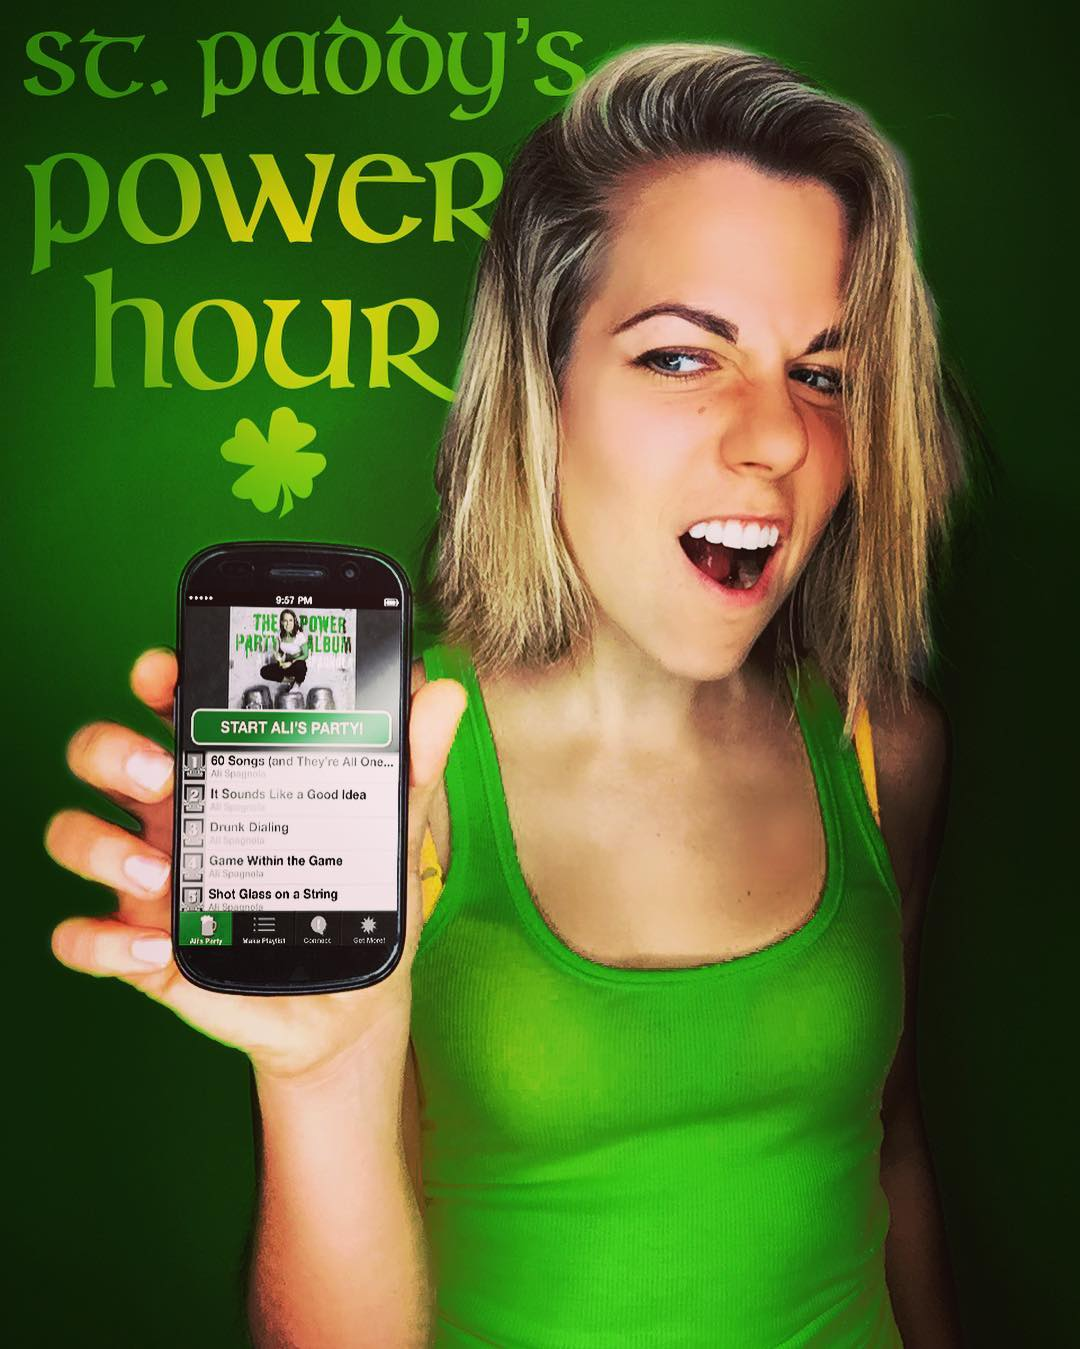 I hear this drinking game goes really well with green beer. (Check the link in my bio to download my party app!)